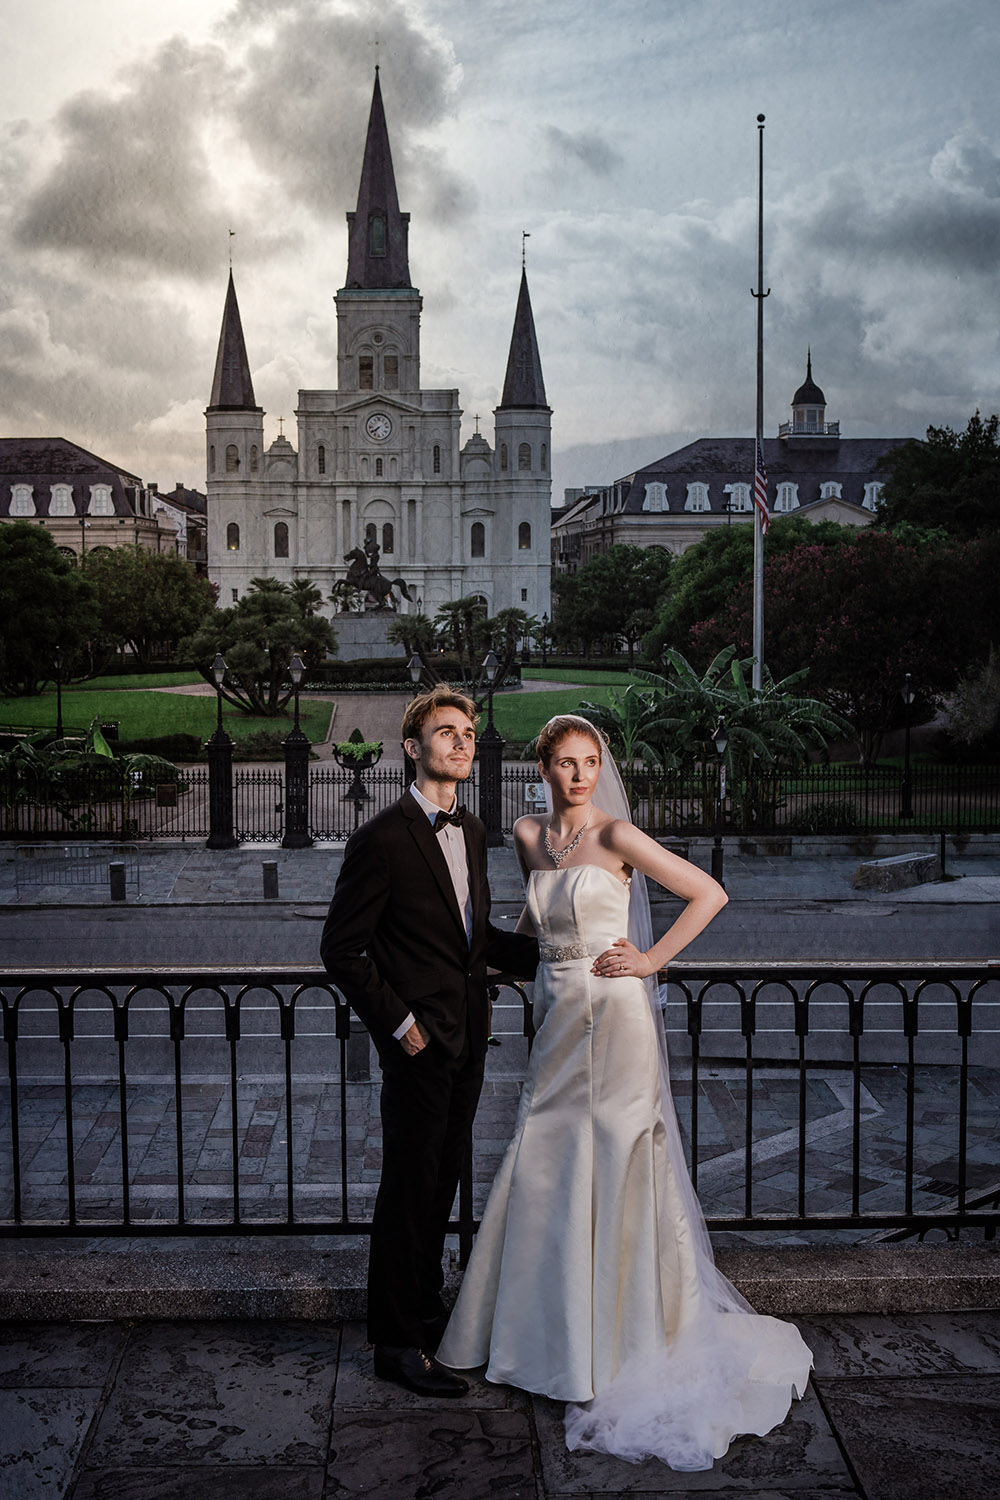 A bride and groom in front of the St. Louis Cathedral in New Orleans